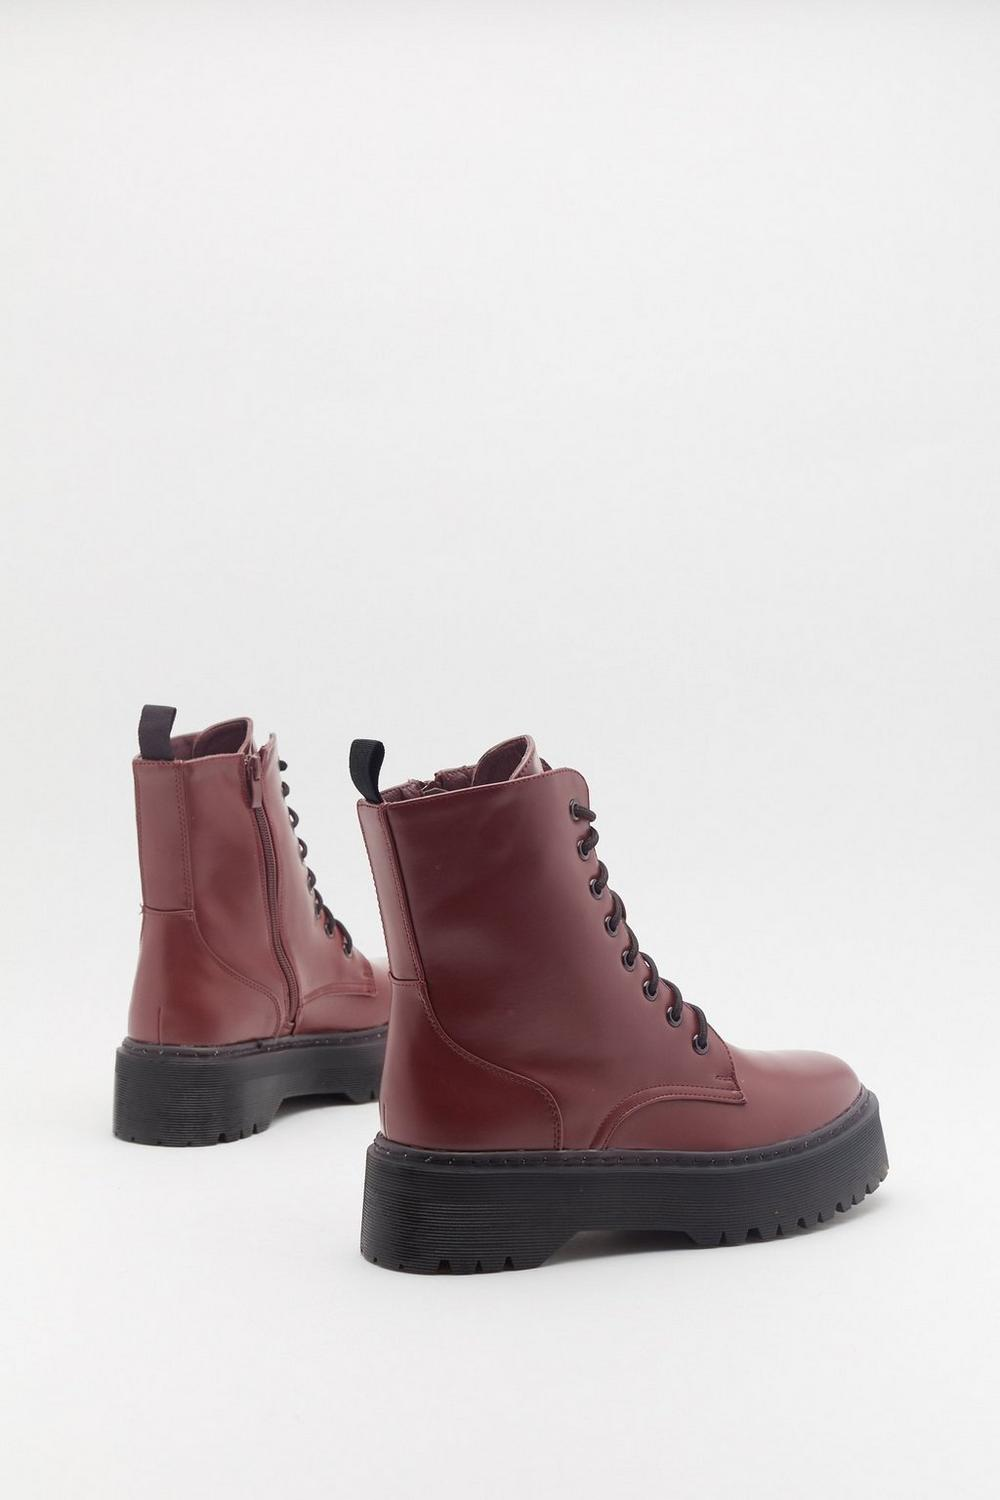 ff4f7815f Keep Walking Faux Leather Biker Boots | Shop Clothes at Nasty Gal!